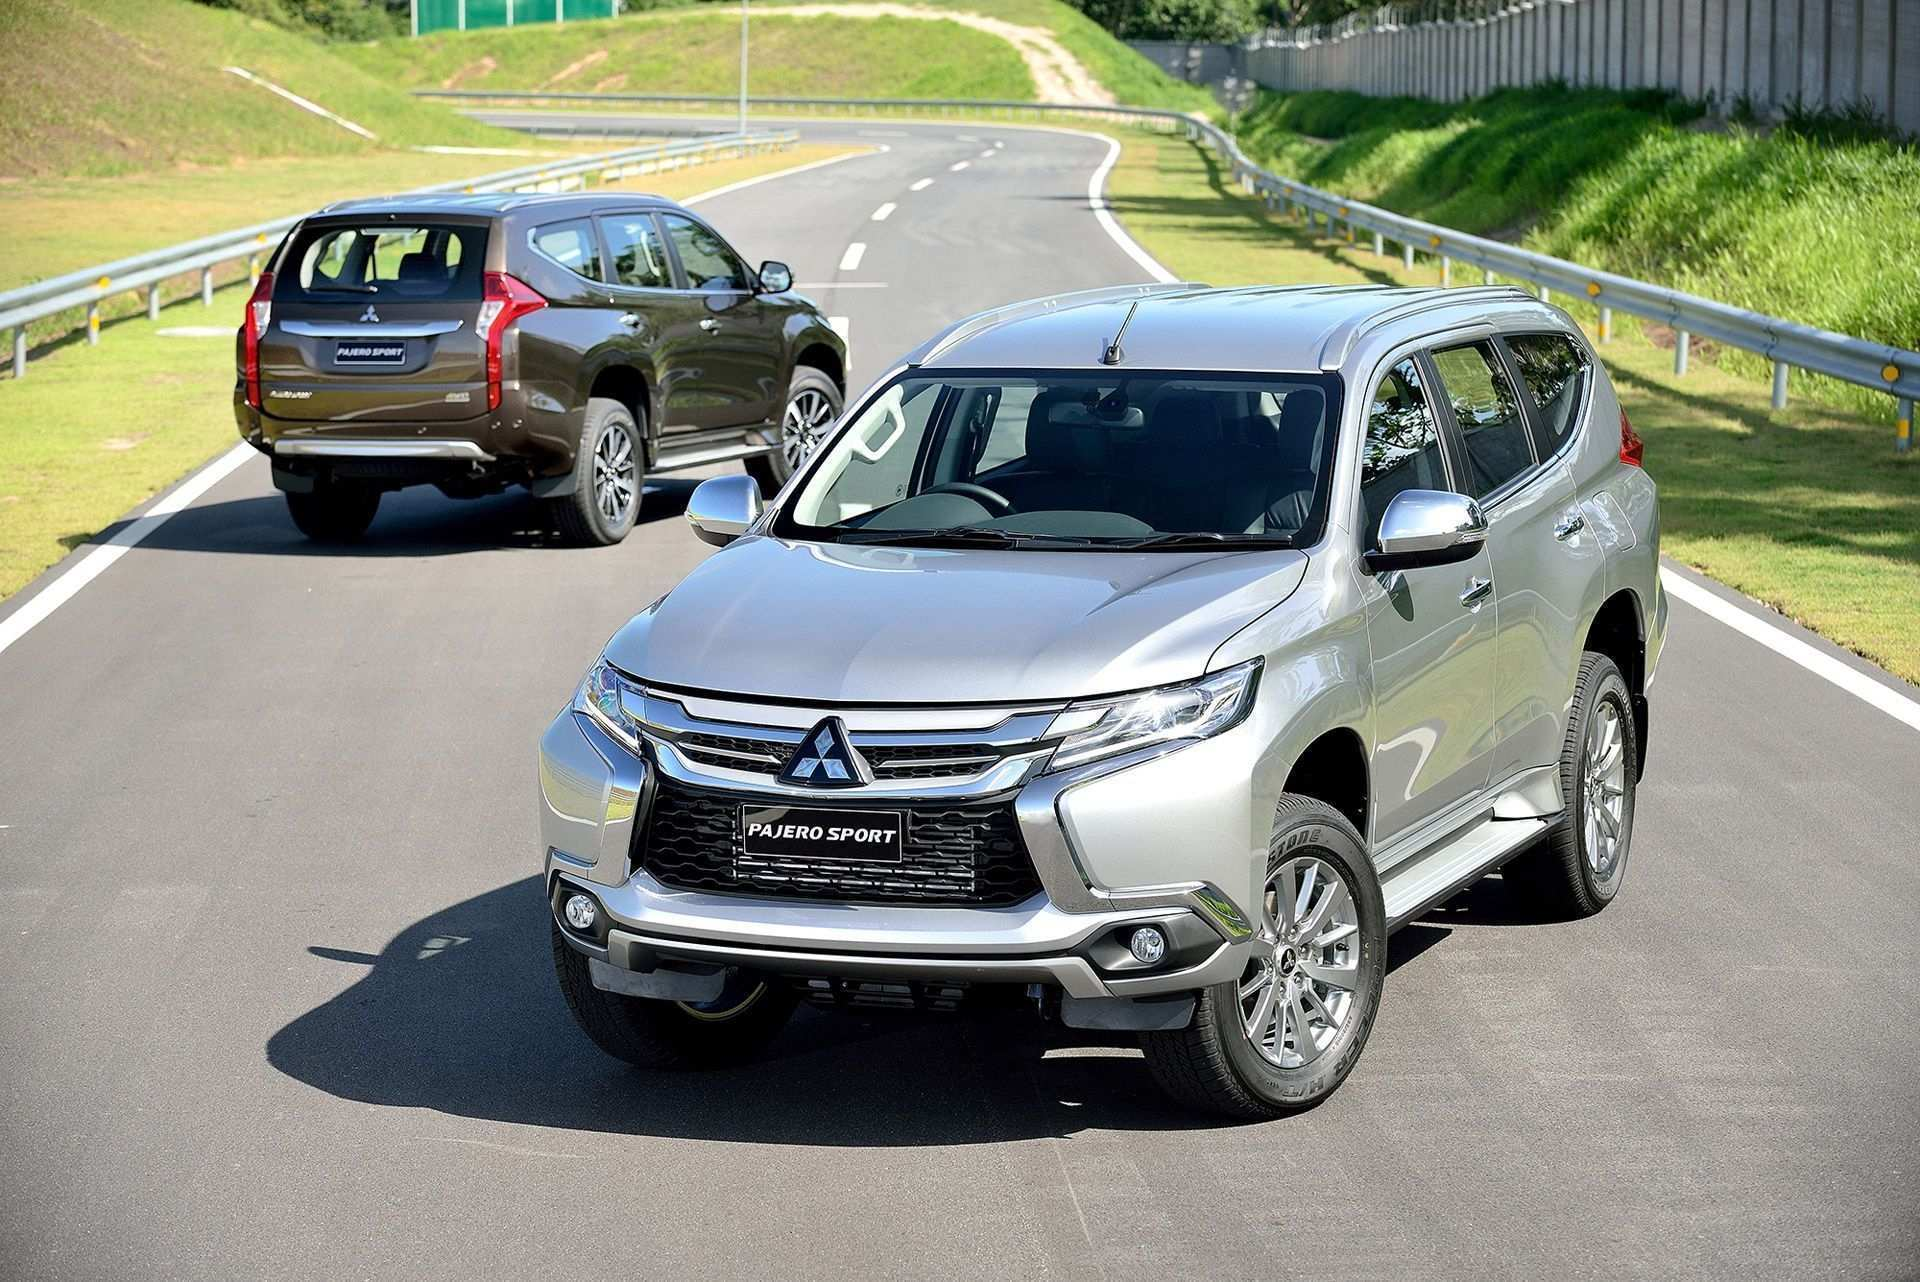 76 Gallery of 2020 Mitsubishi Montero Sport Philippines Redesign and Concept with 2020 Mitsubishi Montero Sport Philippines